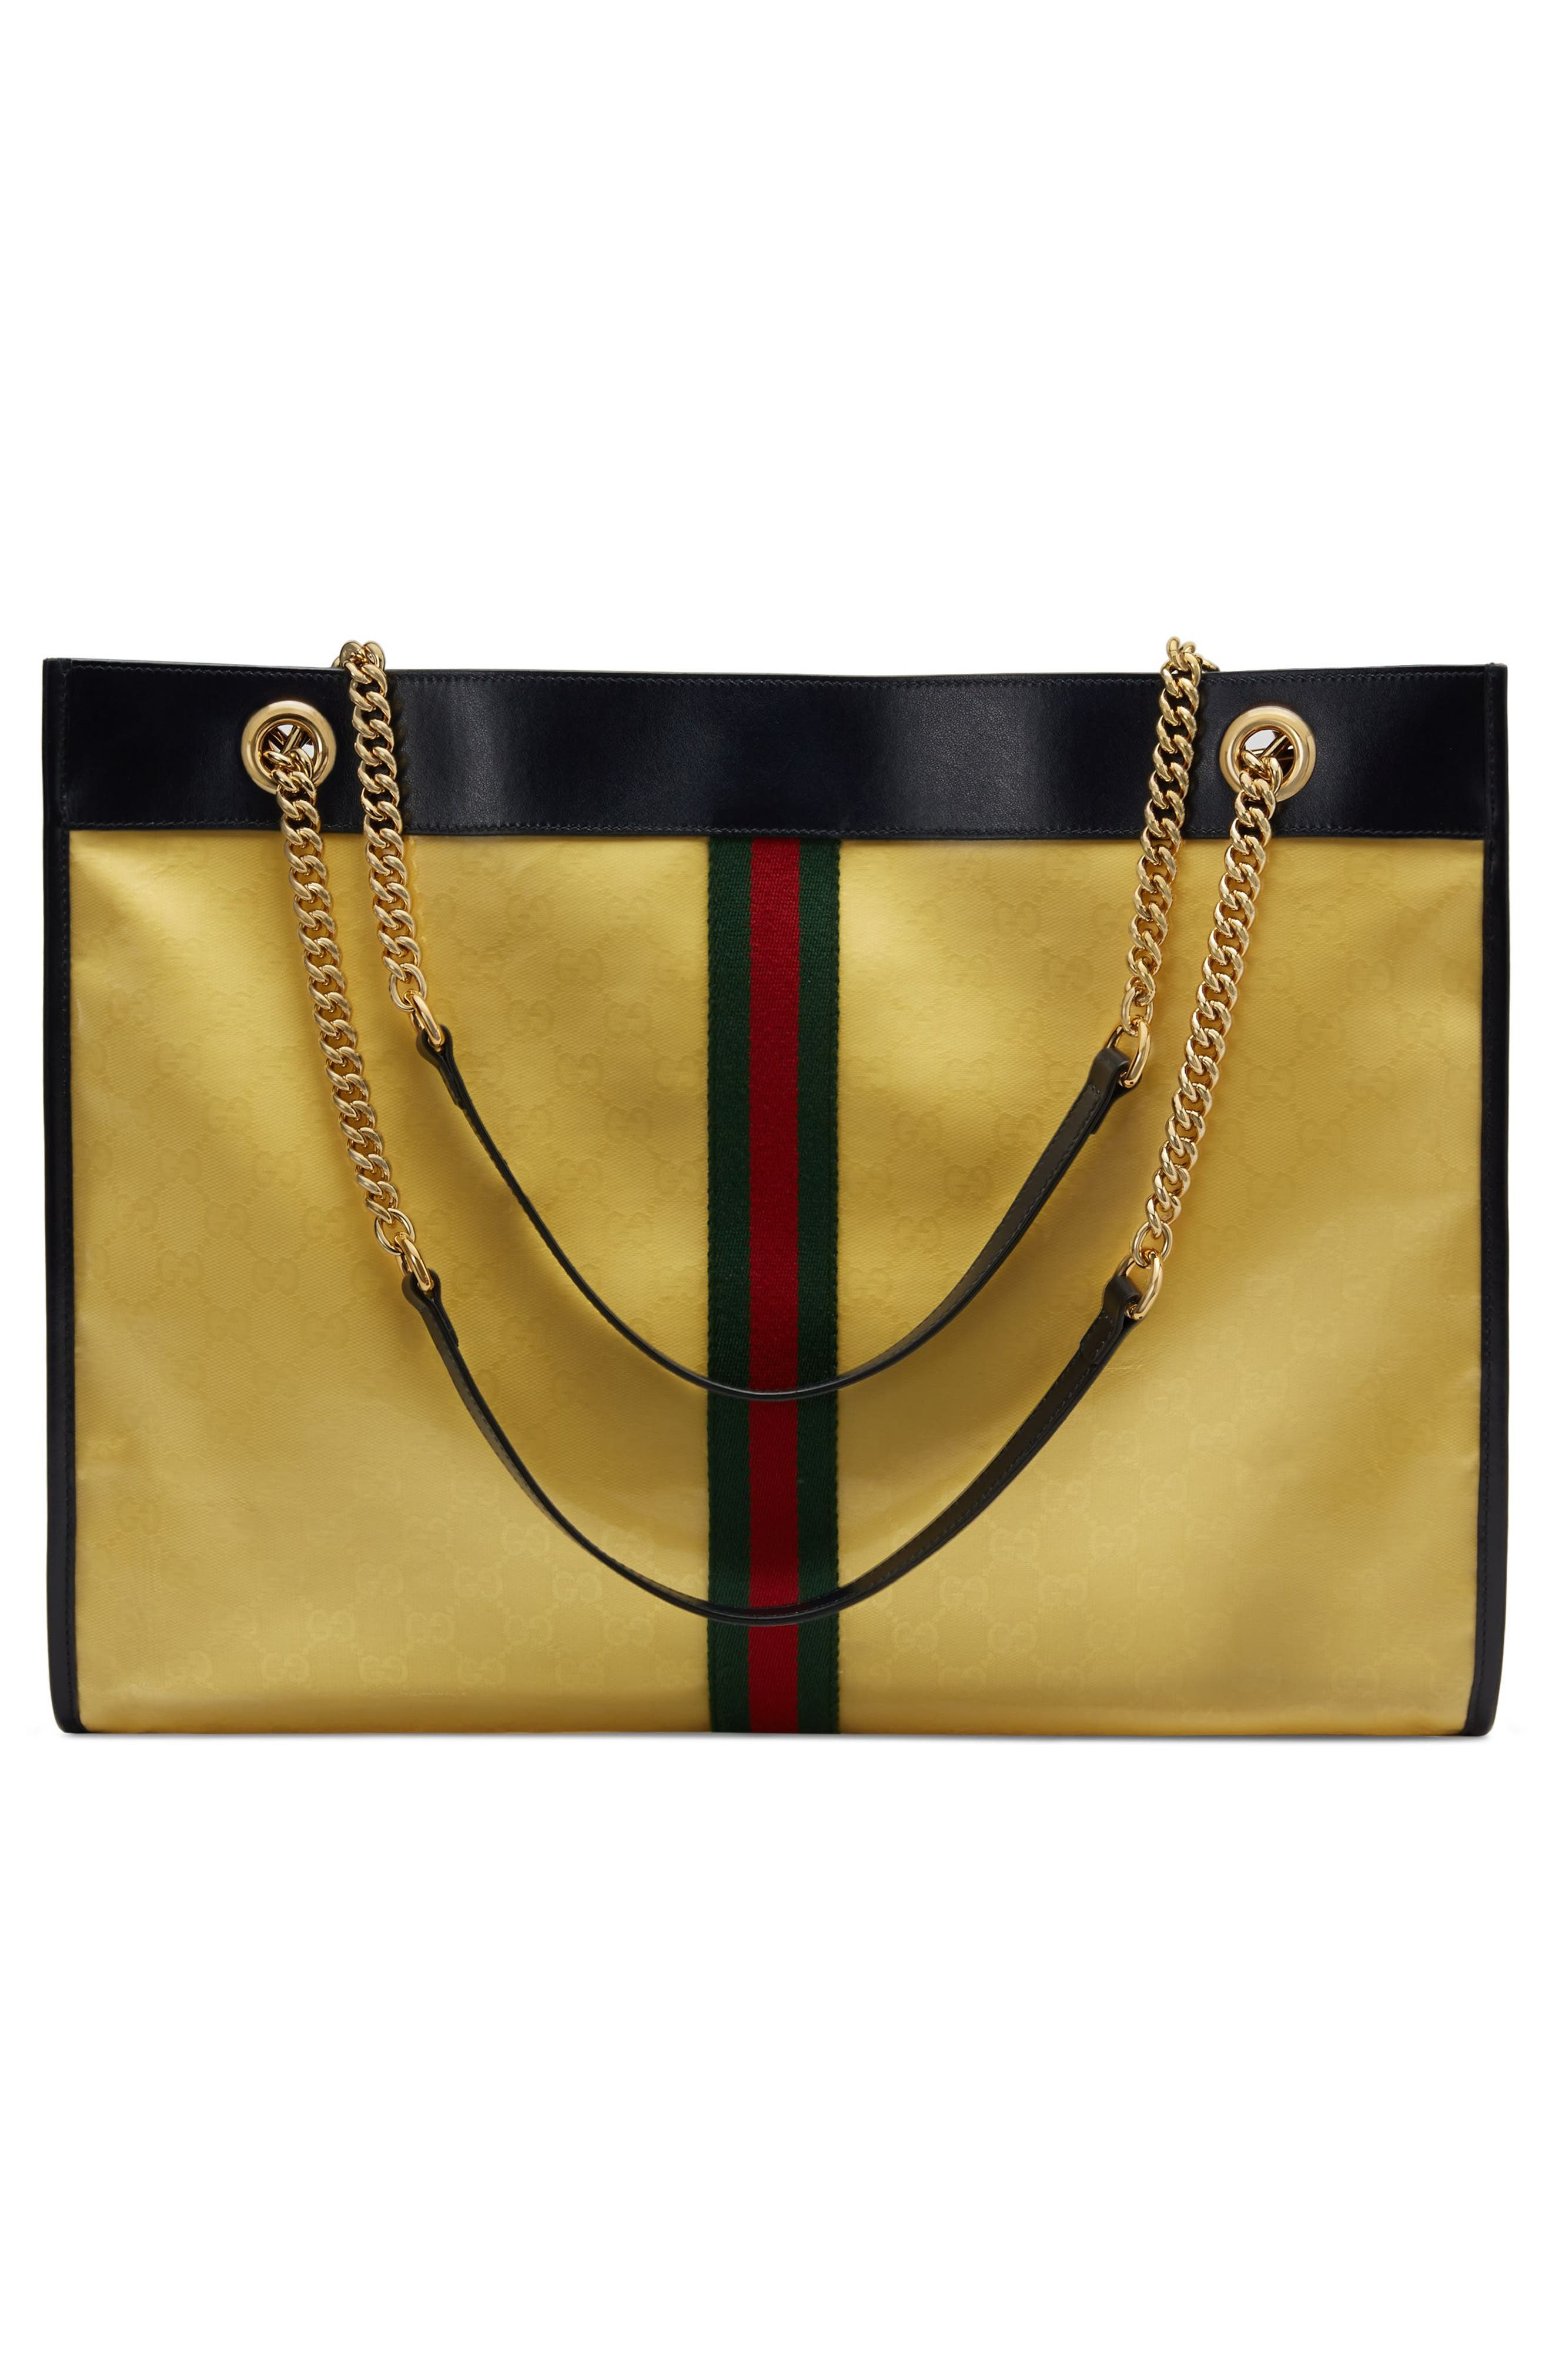 Rajah GG Supreme Canvas Tote,                             Alternate thumbnail 2, color,                             YELLOW/ BLACK/ BLUE/ RED